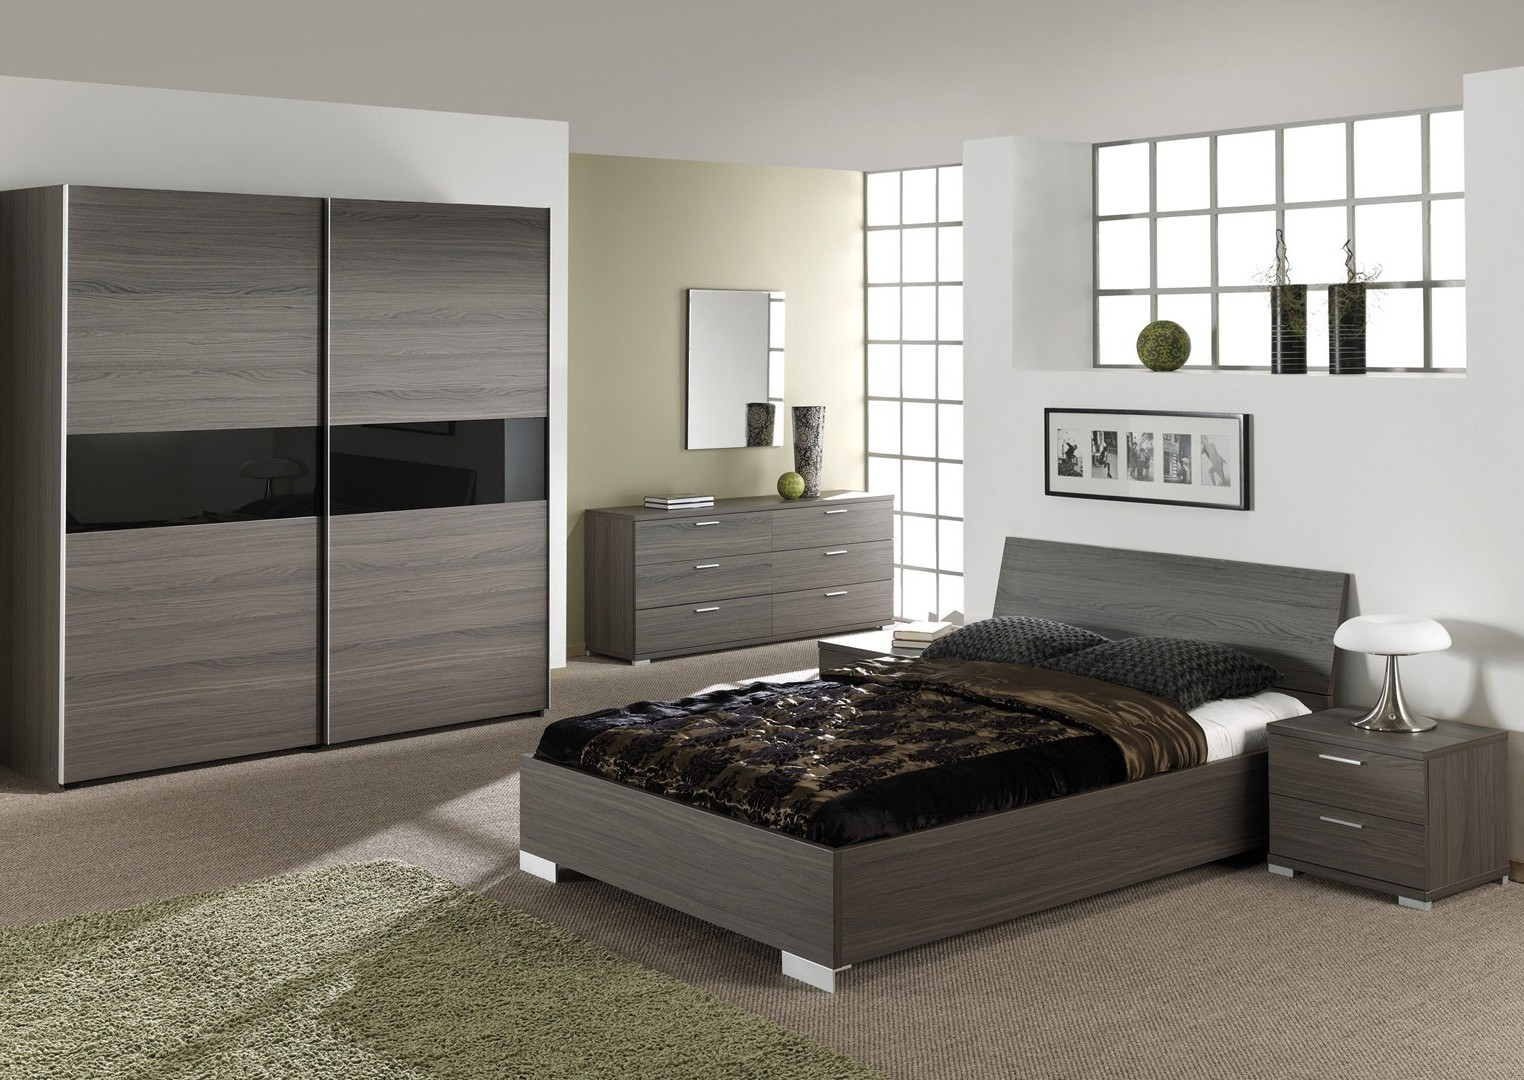 chambre a coucher complete adulte belgique chambre id es de d coration de maison v9lpg5wno3. Black Bedroom Furniture Sets. Home Design Ideas